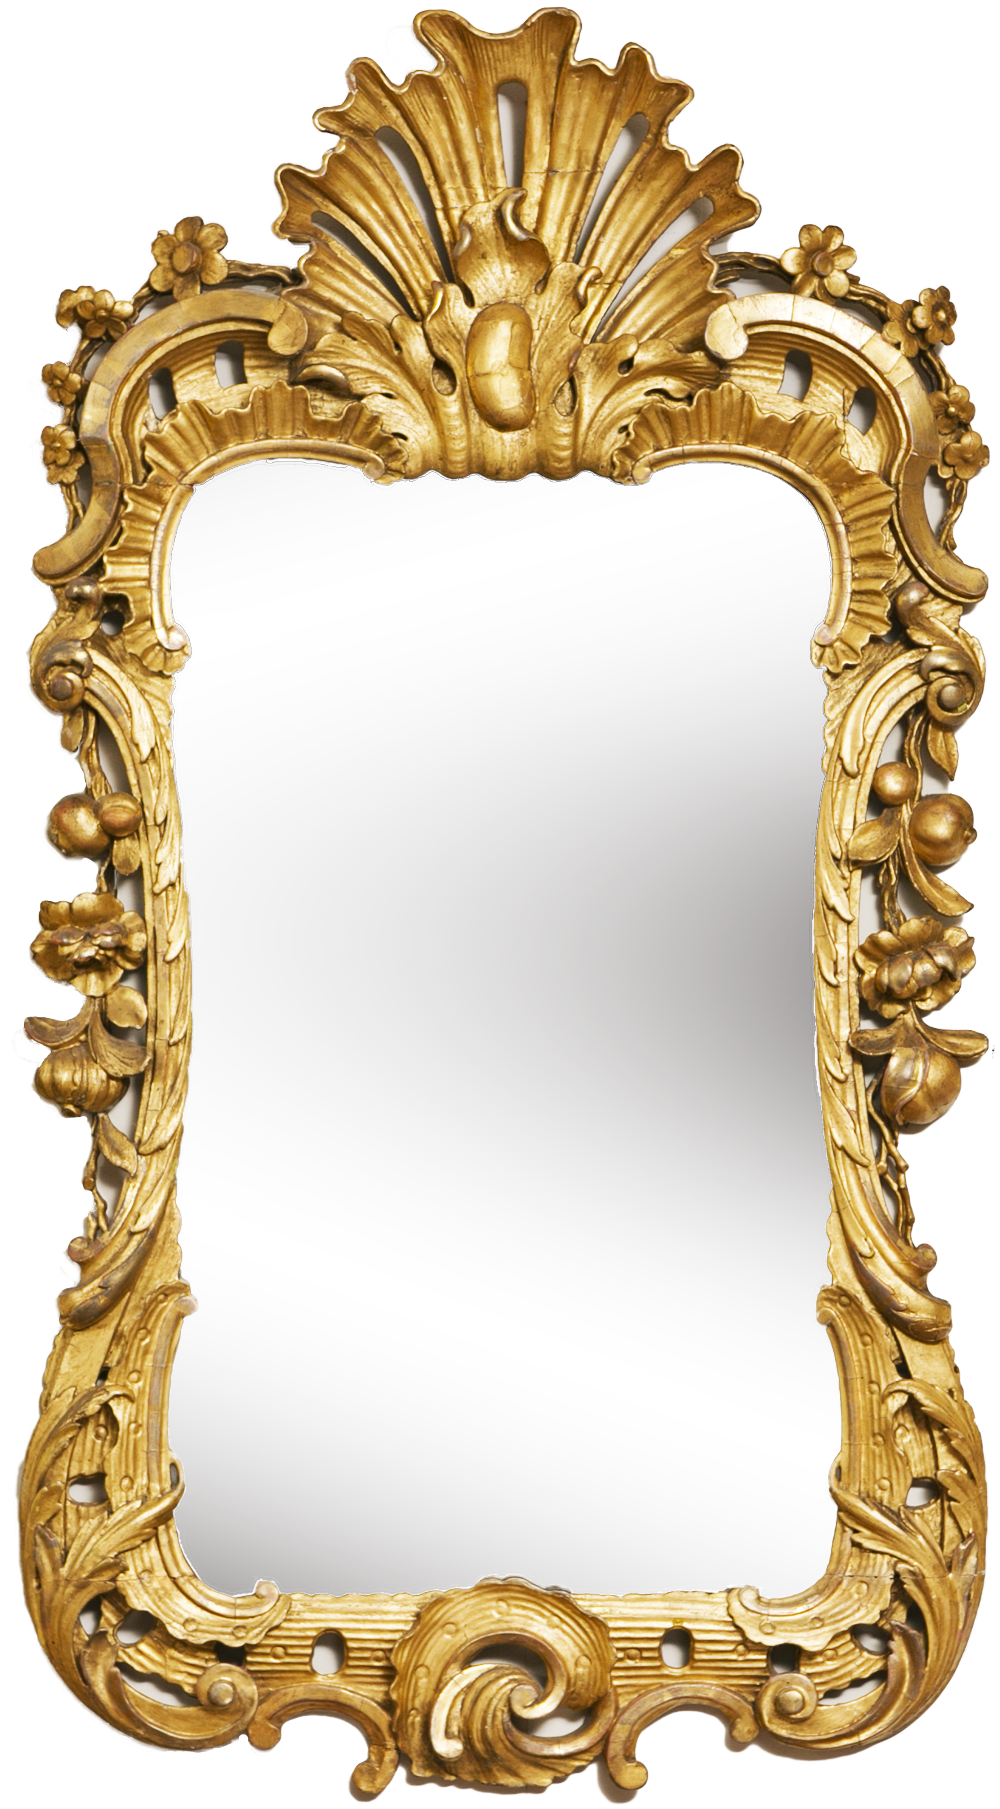 Mirror png. Images free download